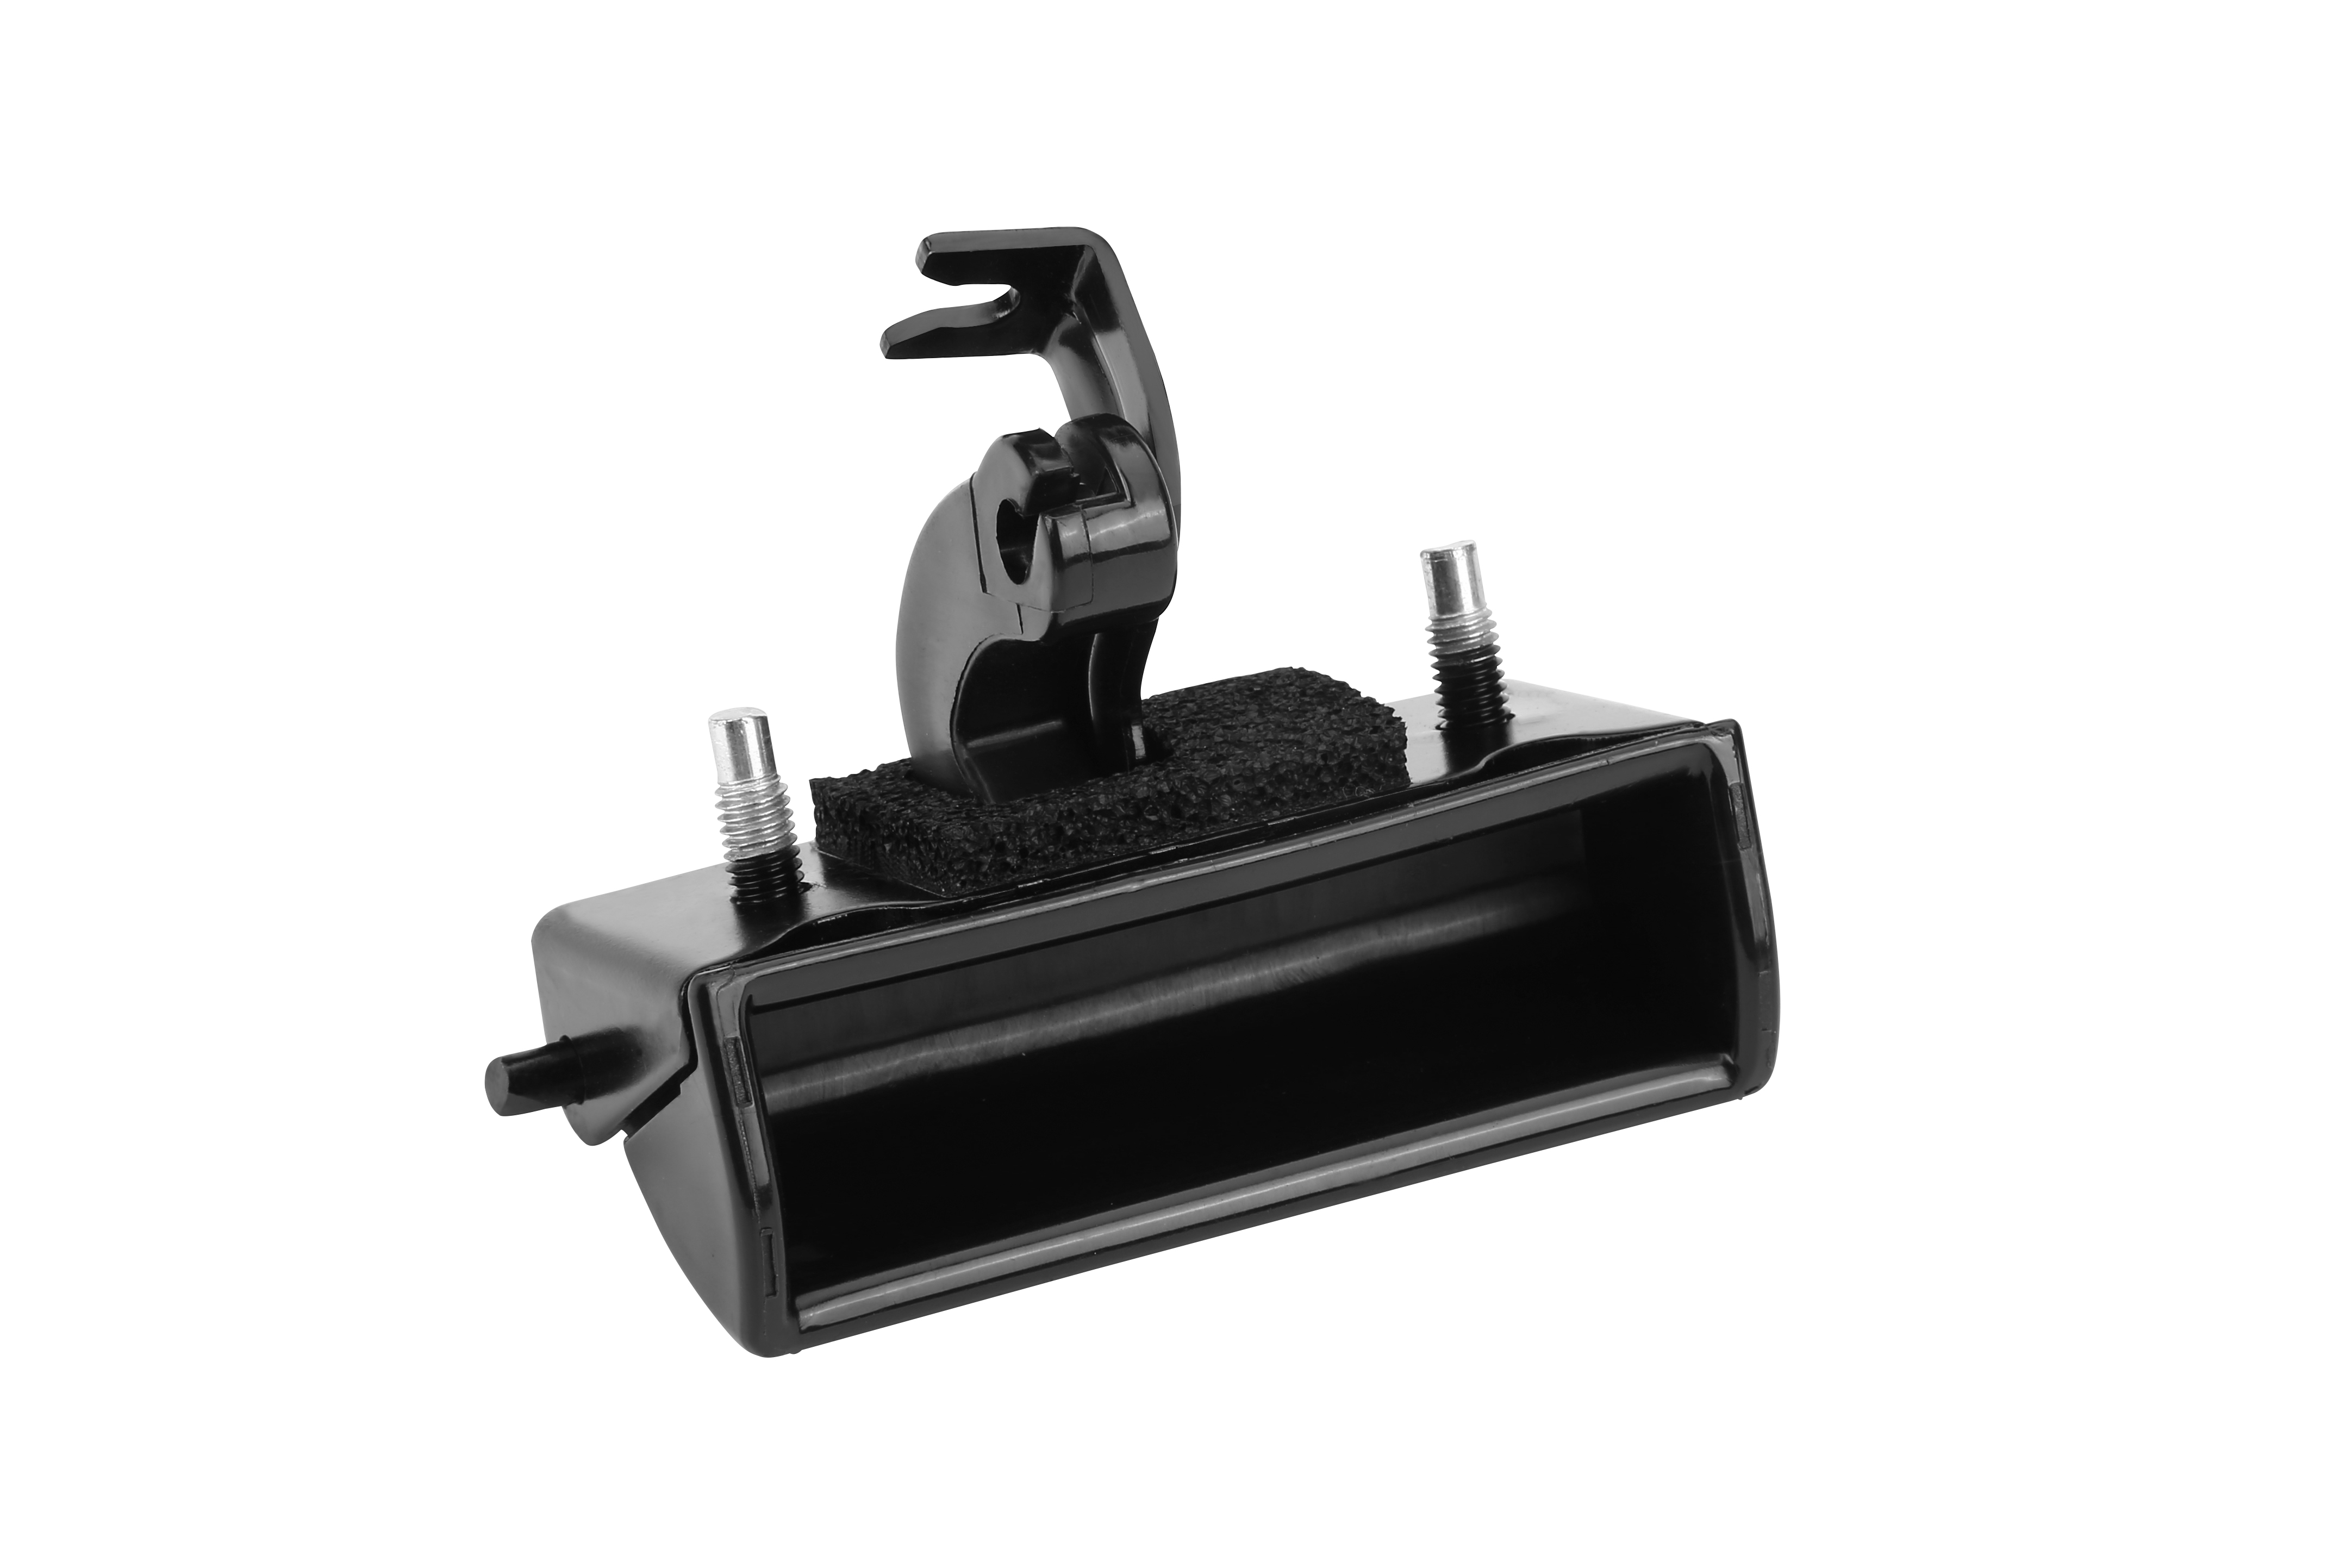 Hatch Trunk Latch Handle Actuator - Fits Honda Fit 07-19 - Replaces 74810-S6A-00 Image